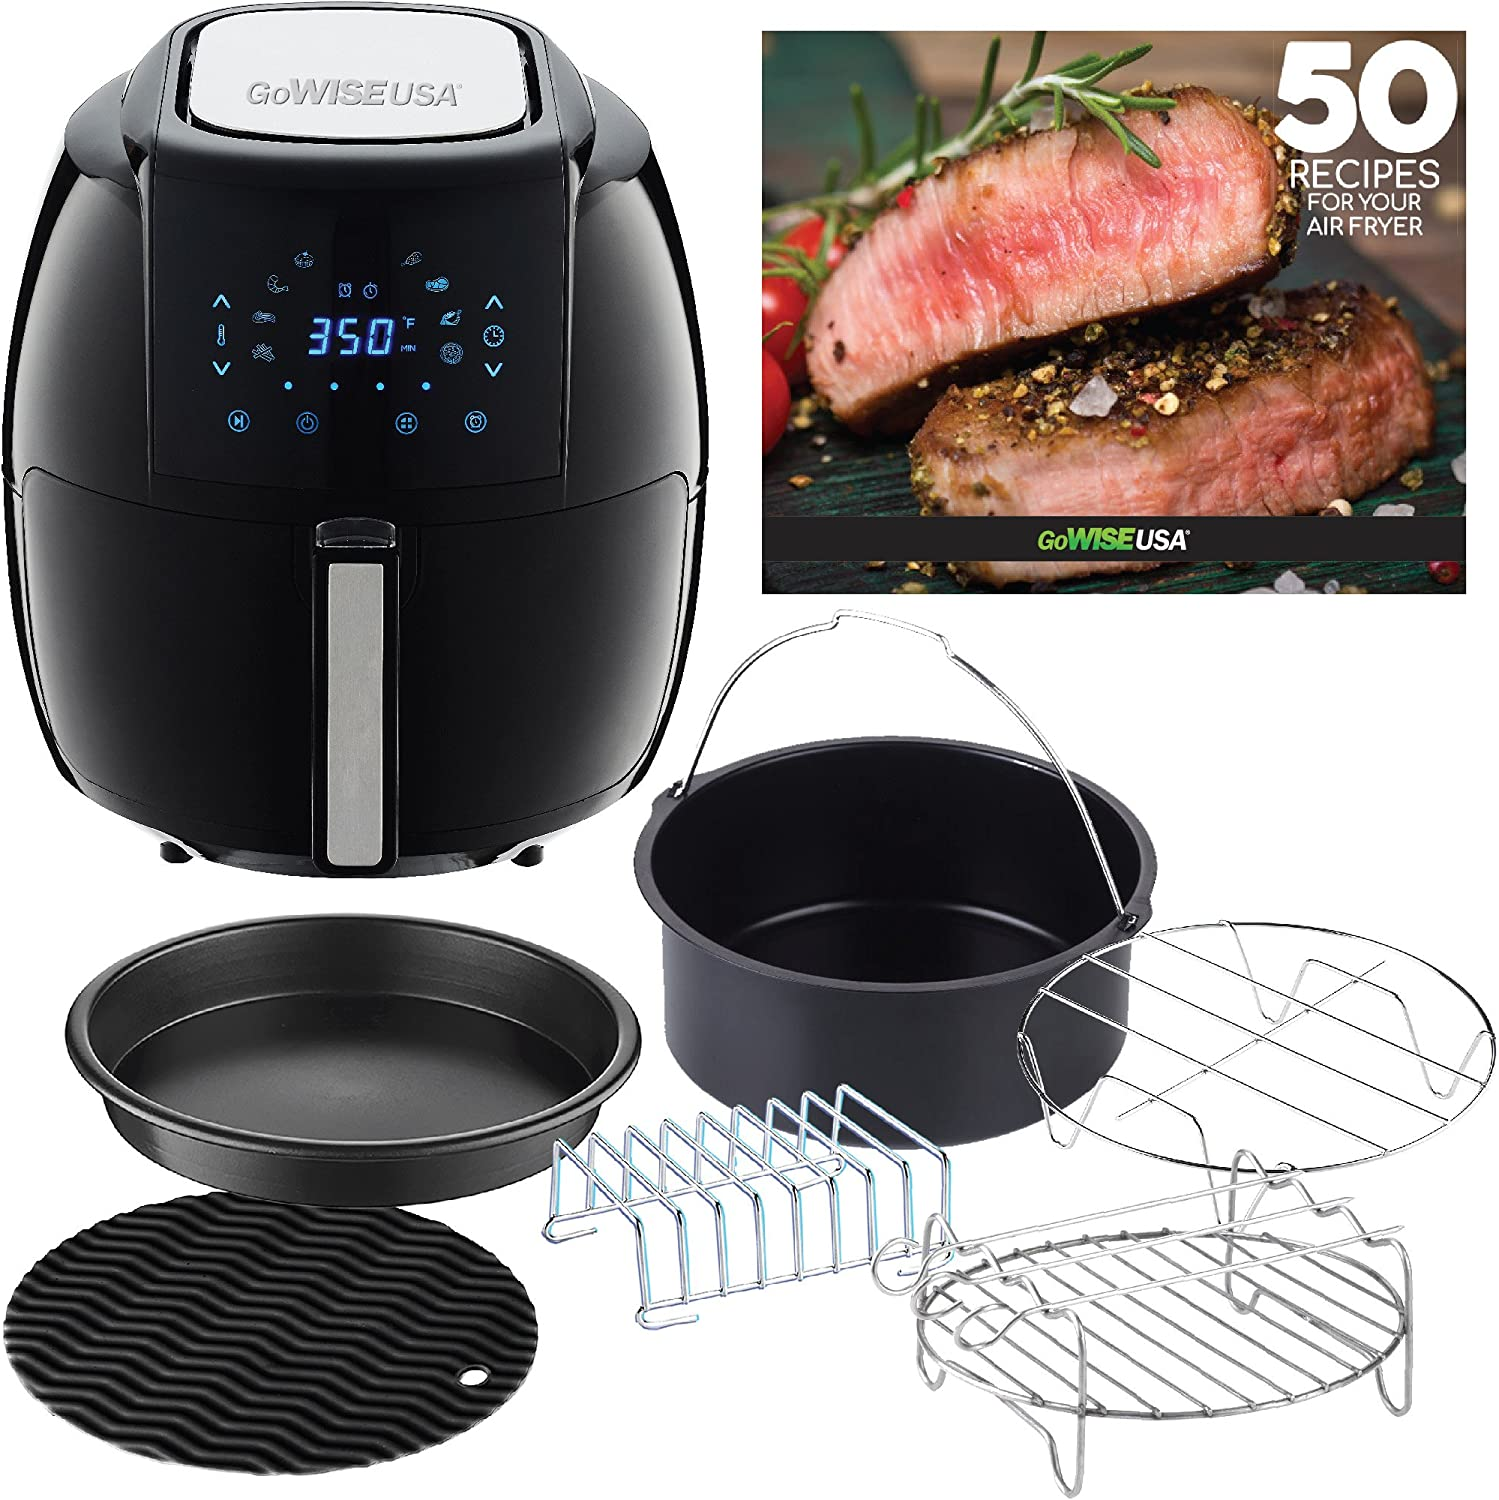 GoWISE USA GWAC22003 5.8-Quart Air Fryer with Accessories, 6 Pcs, and 8 Cooking Presets 50 Recipes Black , Qt